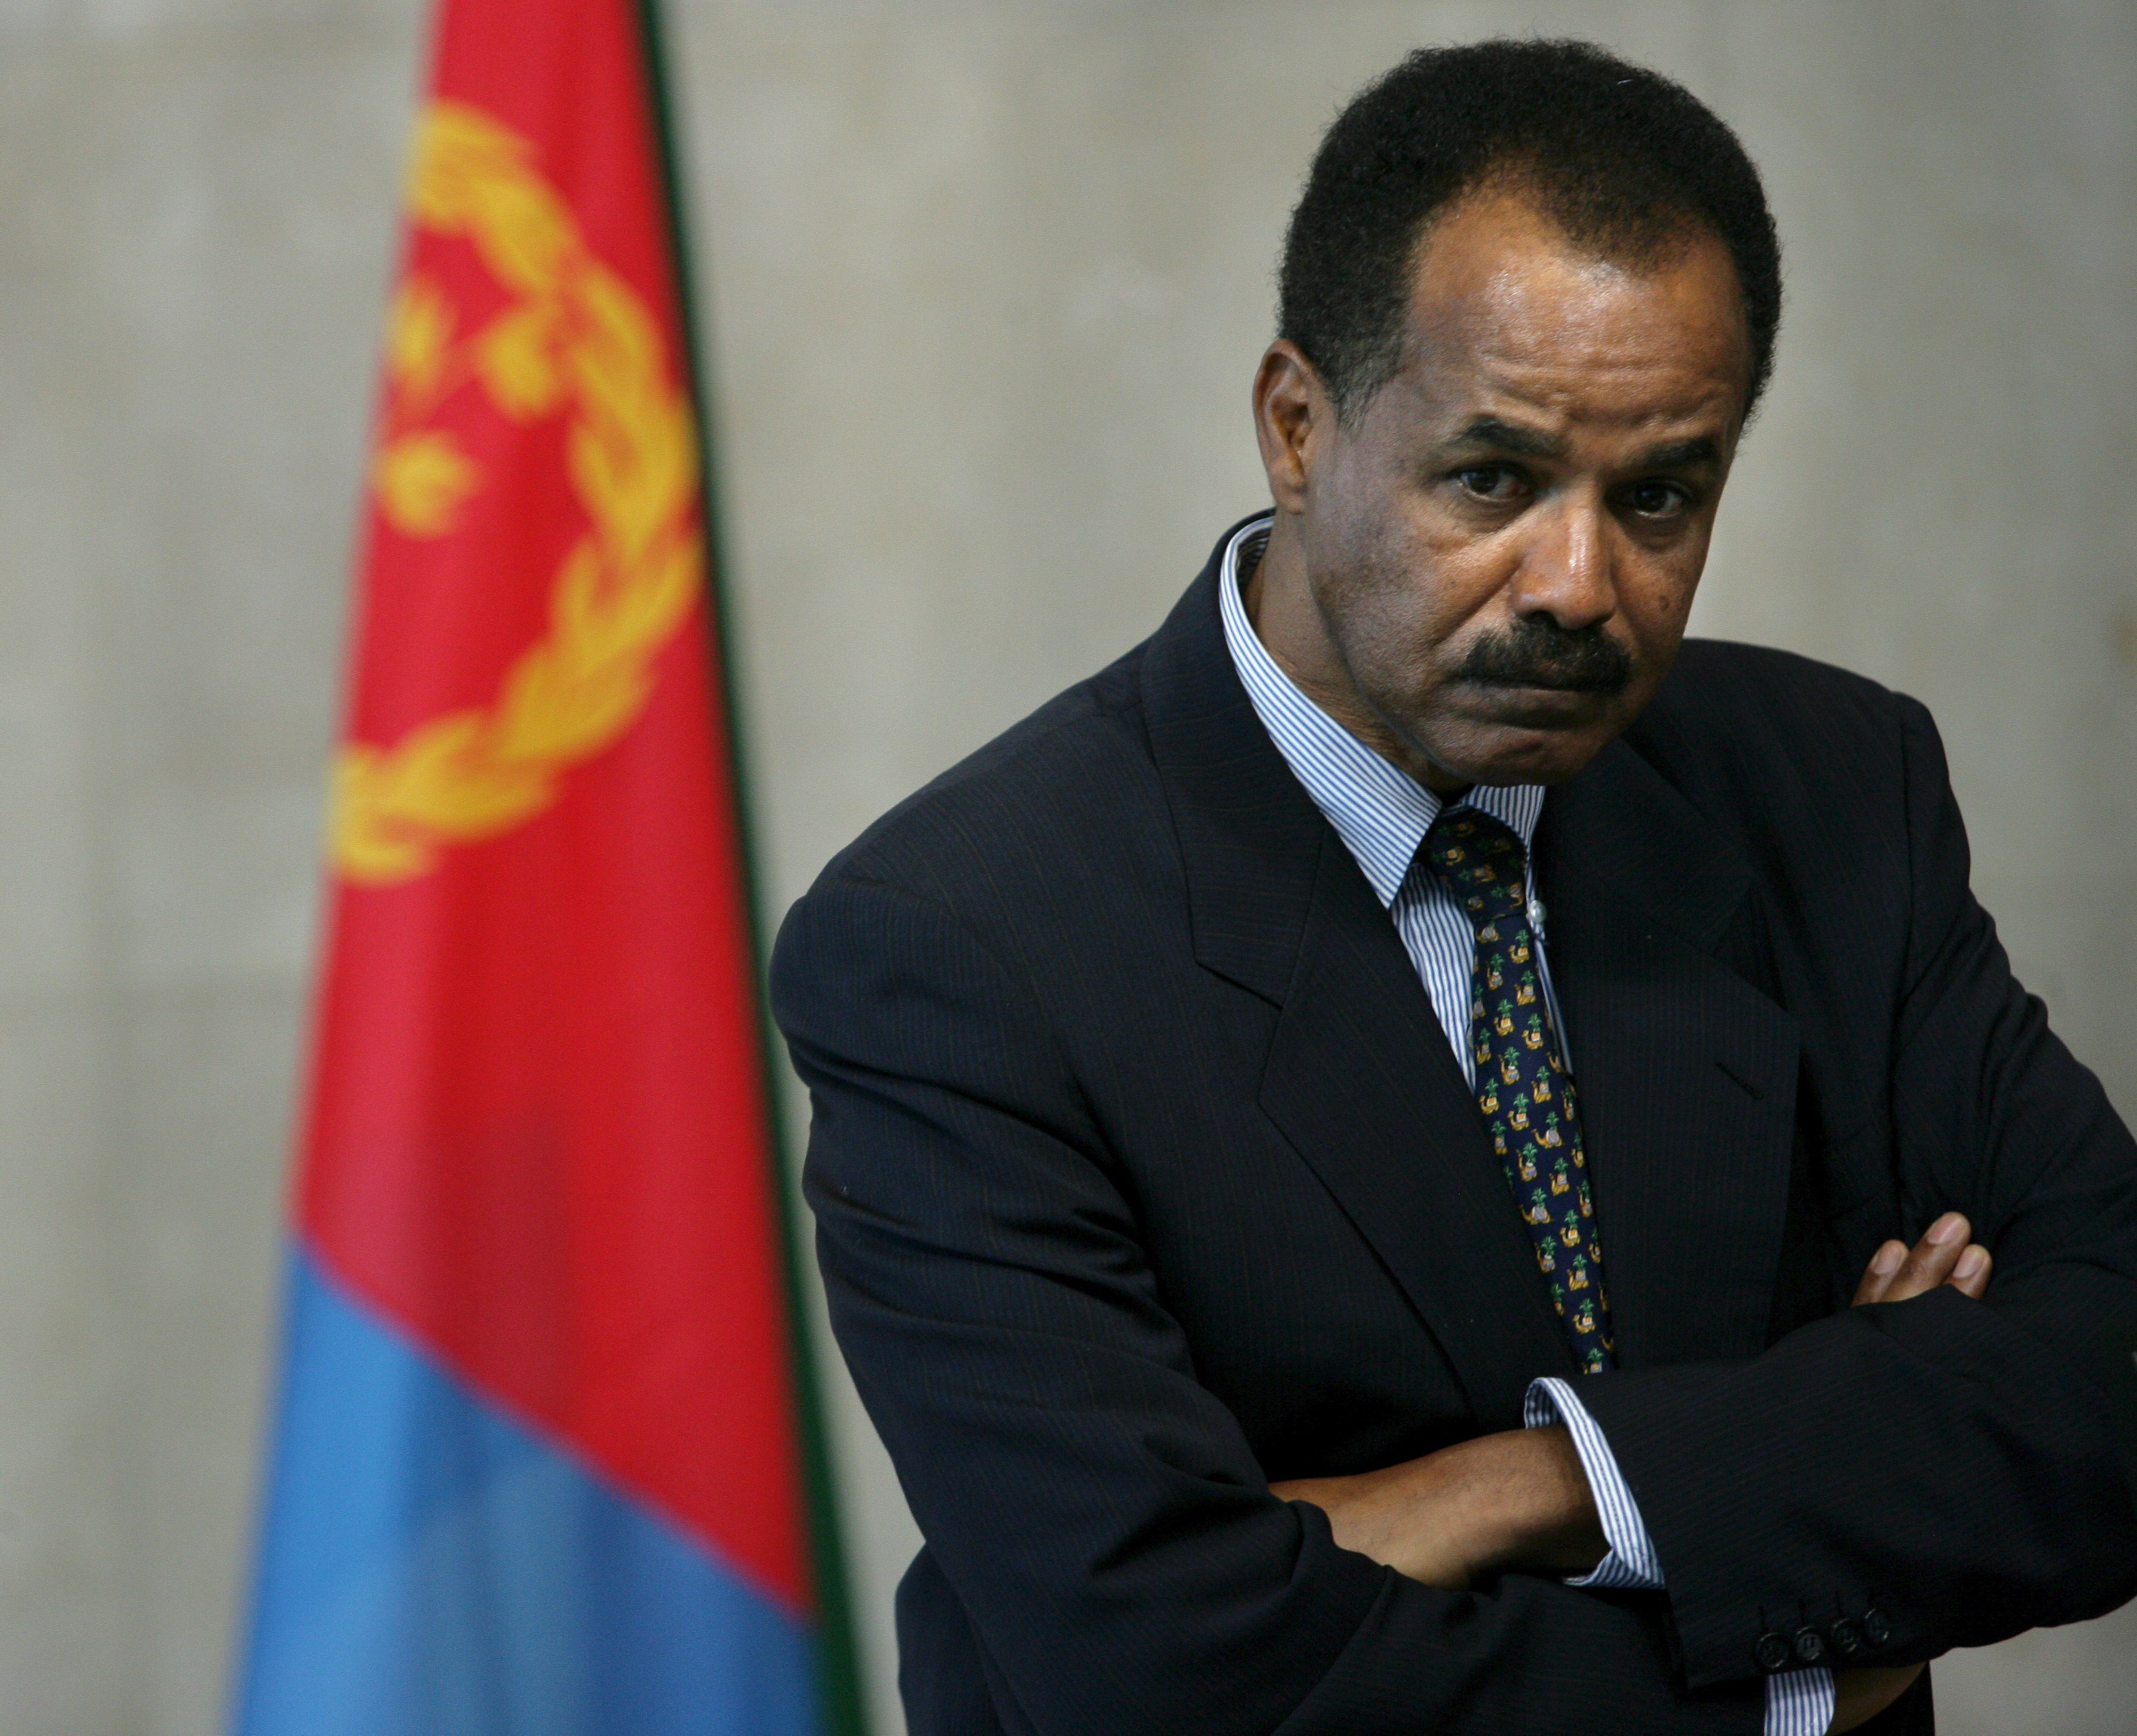 Eritrean: Project Exile: Eritrean Broadcaster Waited Five Years To